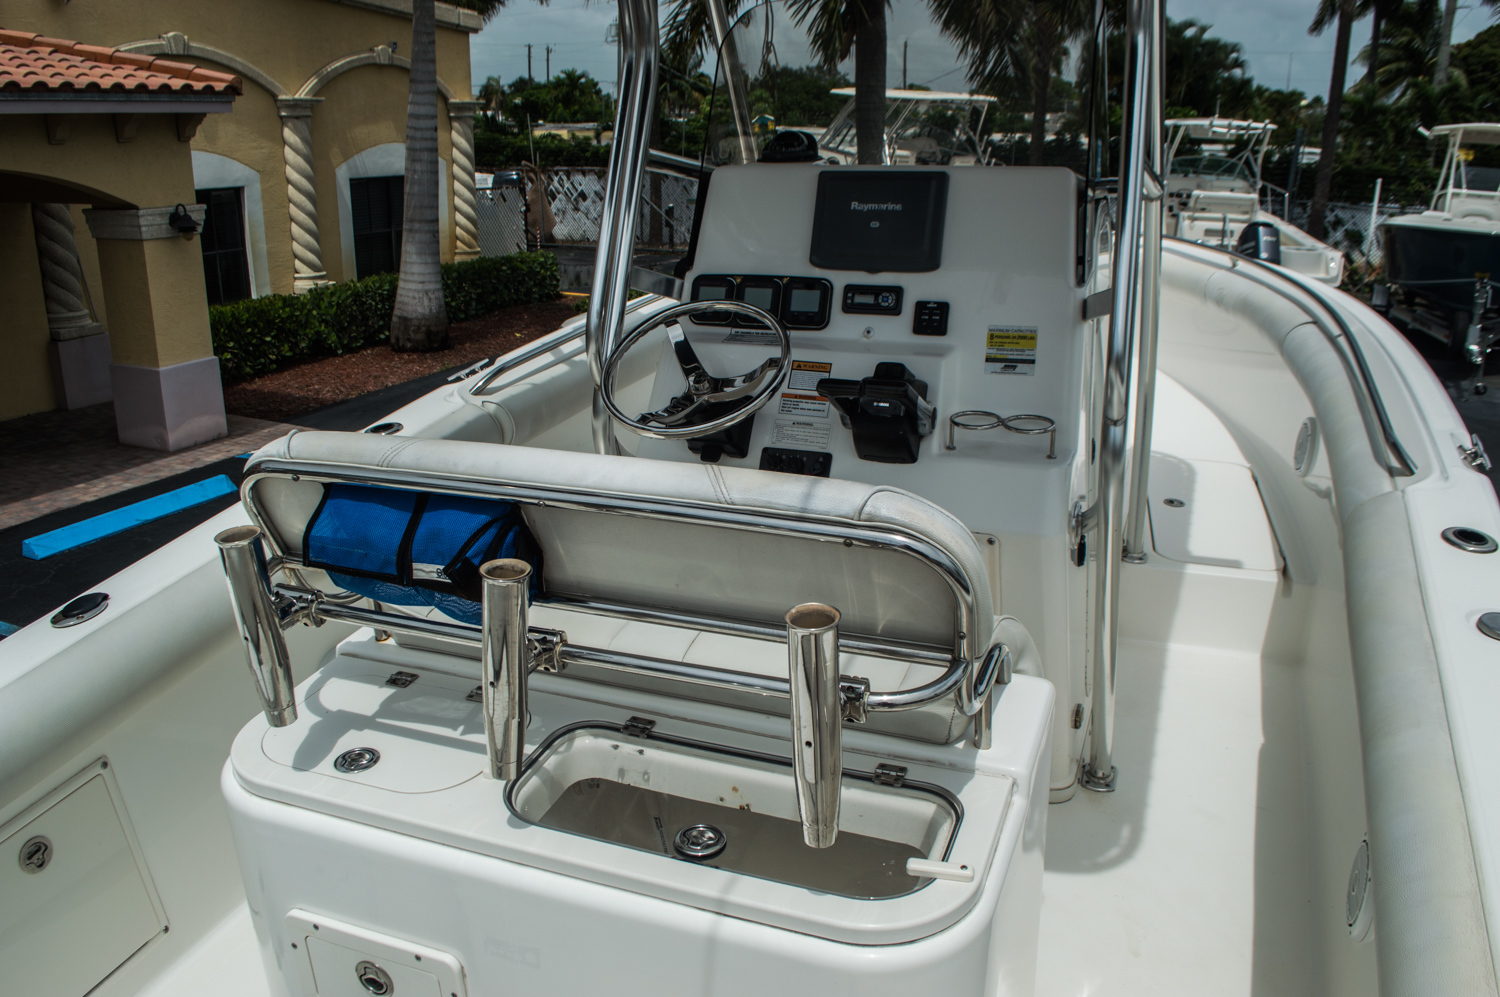 Thumbnail 8 for Used 2006 Century 2400 Center Console boat for sale in West Palm Beach, FL